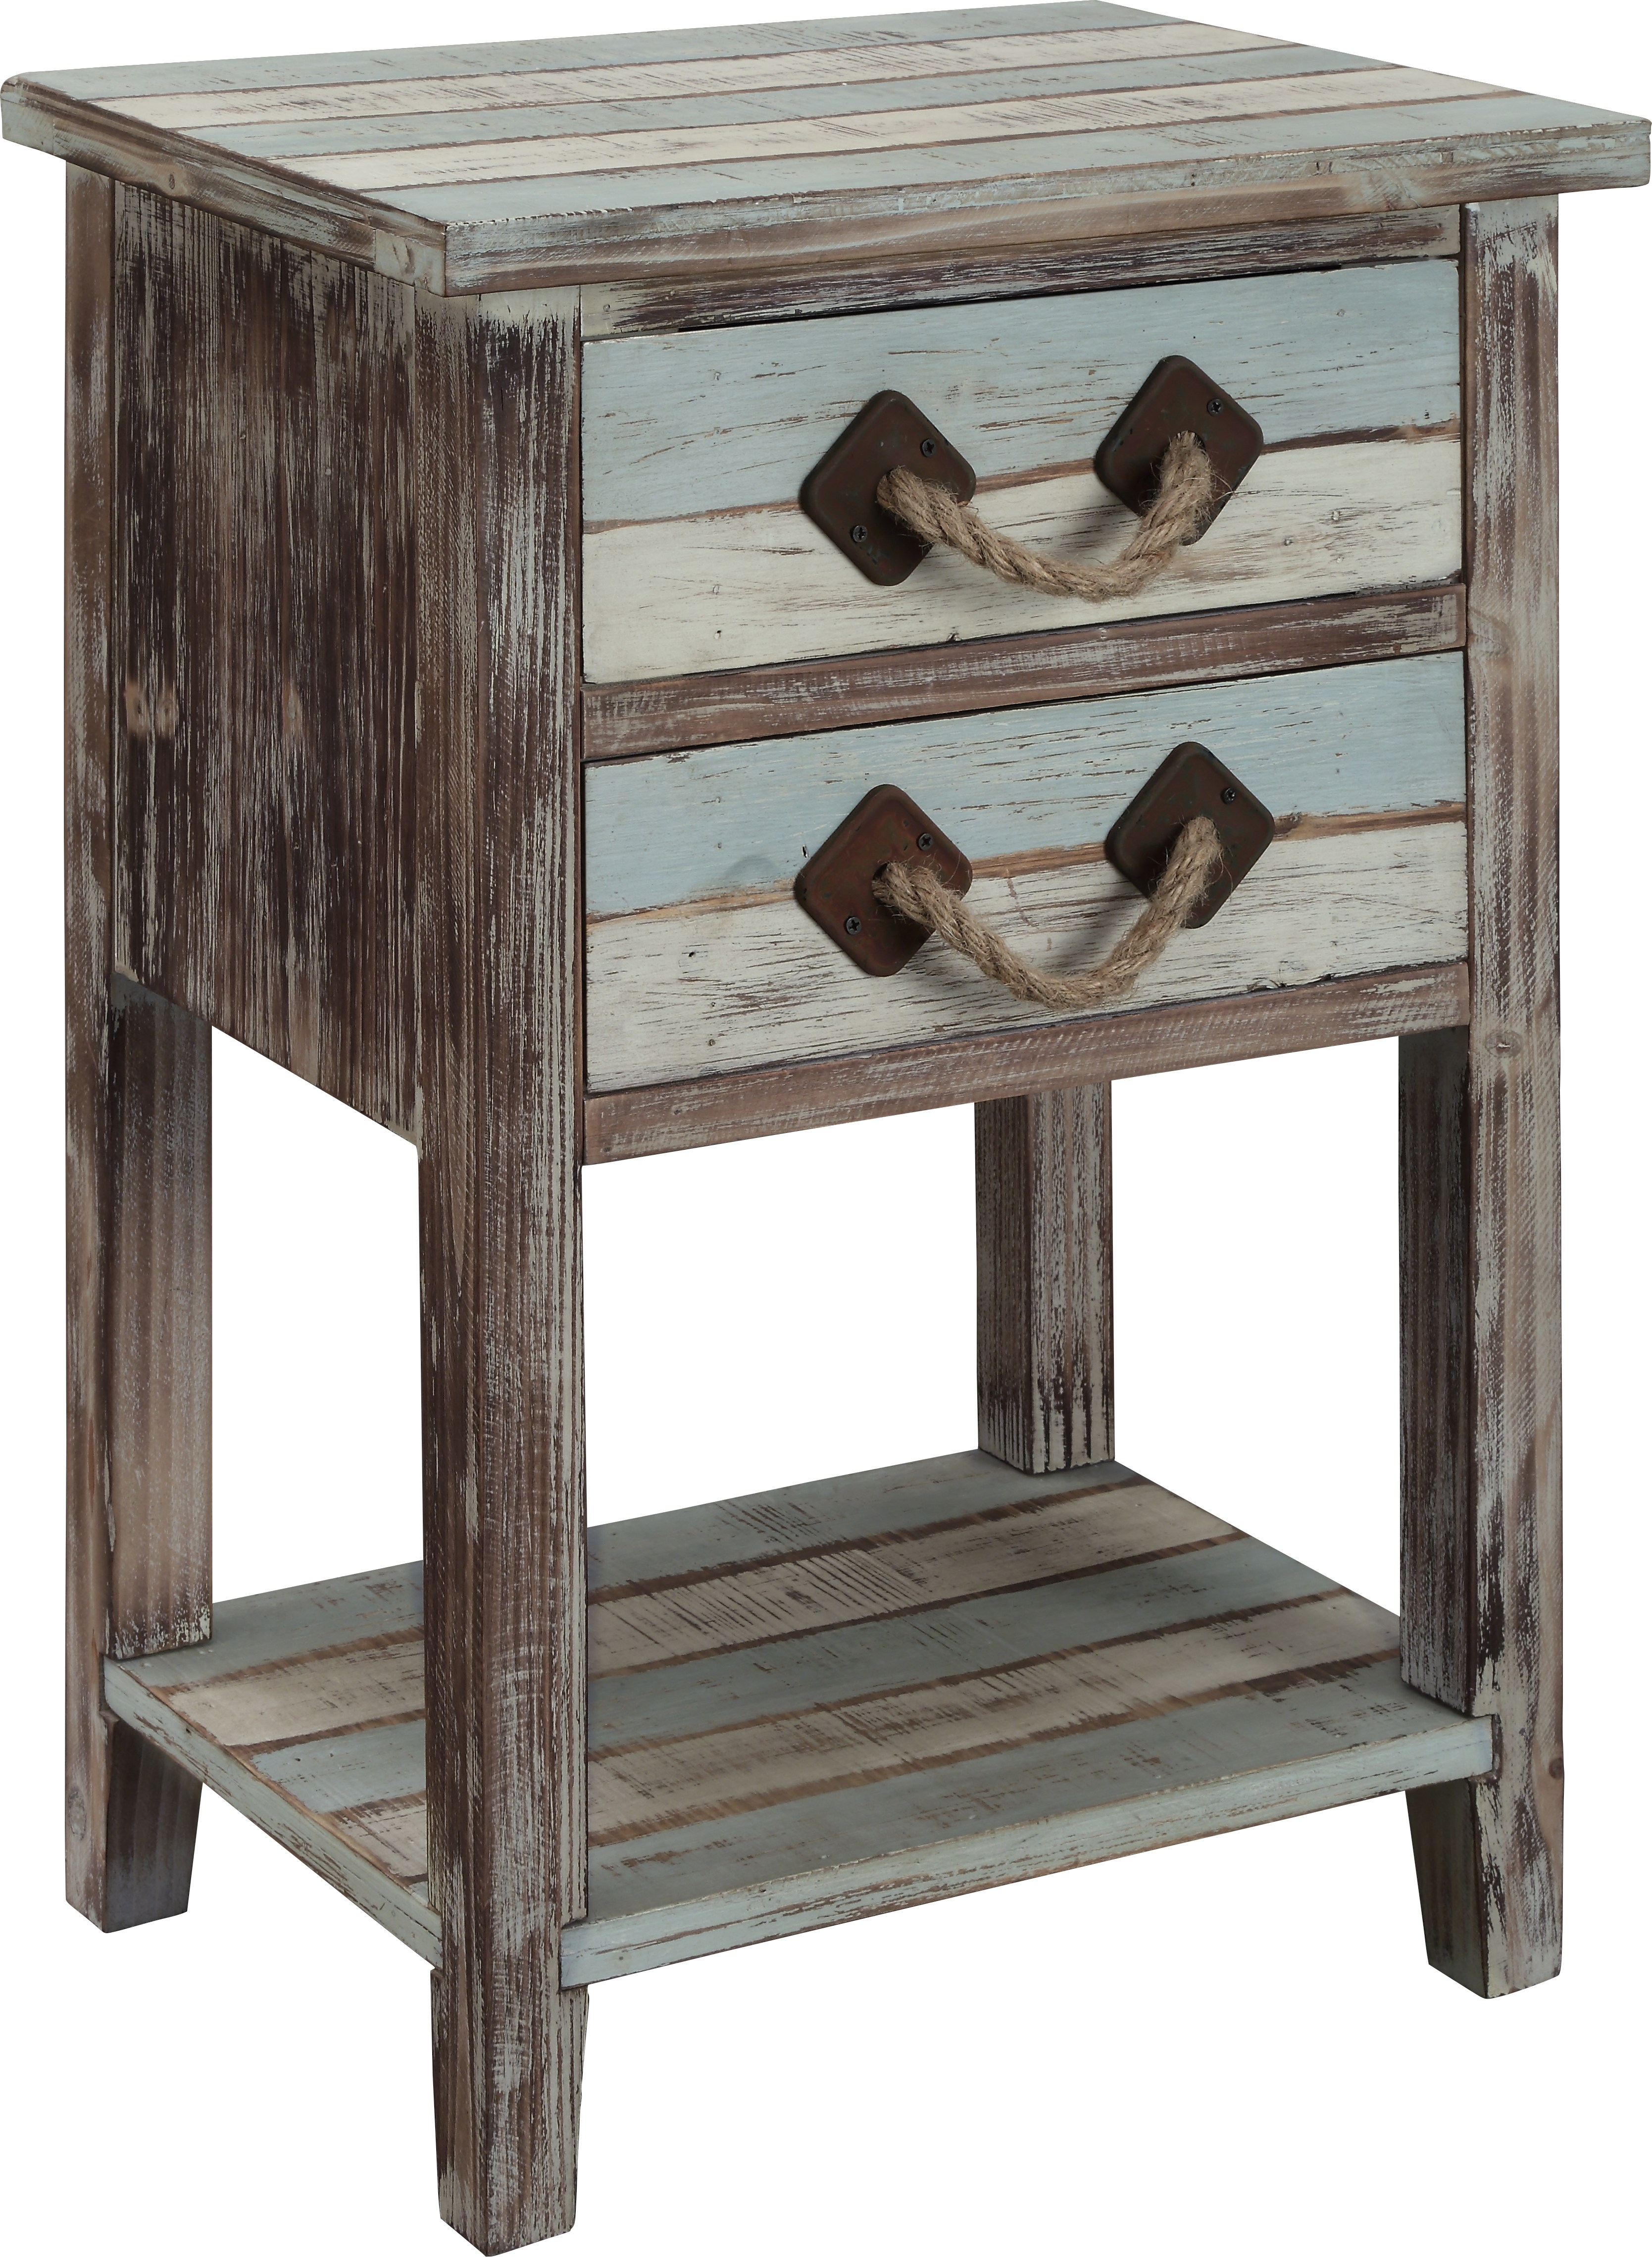 longboat key blue accent table tables colors vinyl furniture gold drawer pulls white lamp base modern living room chairs small gloss console ashley ott light mango wood retro